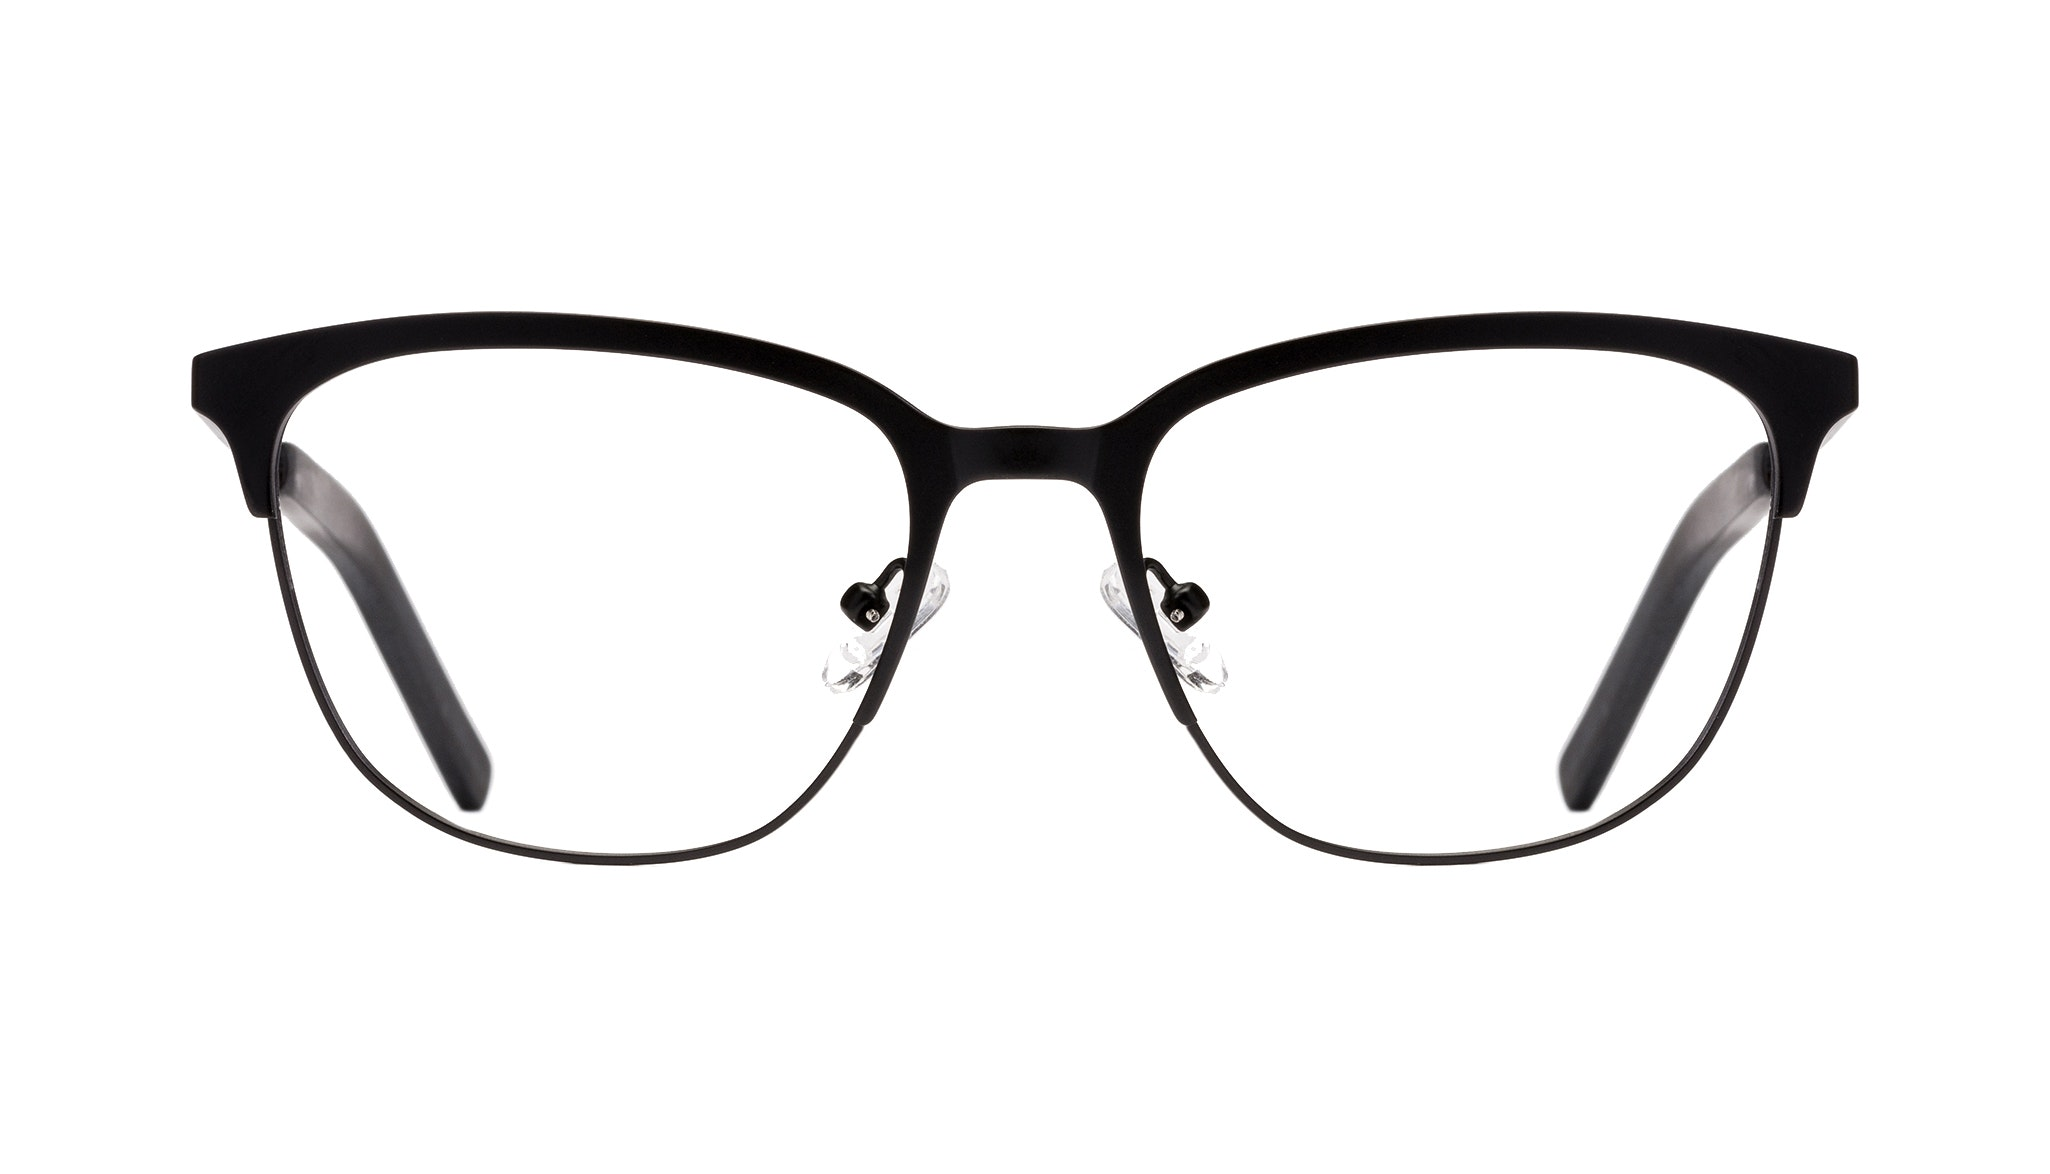 Affordable Fashion Glasses Rectangle Eyeglasses Men Legacy Black